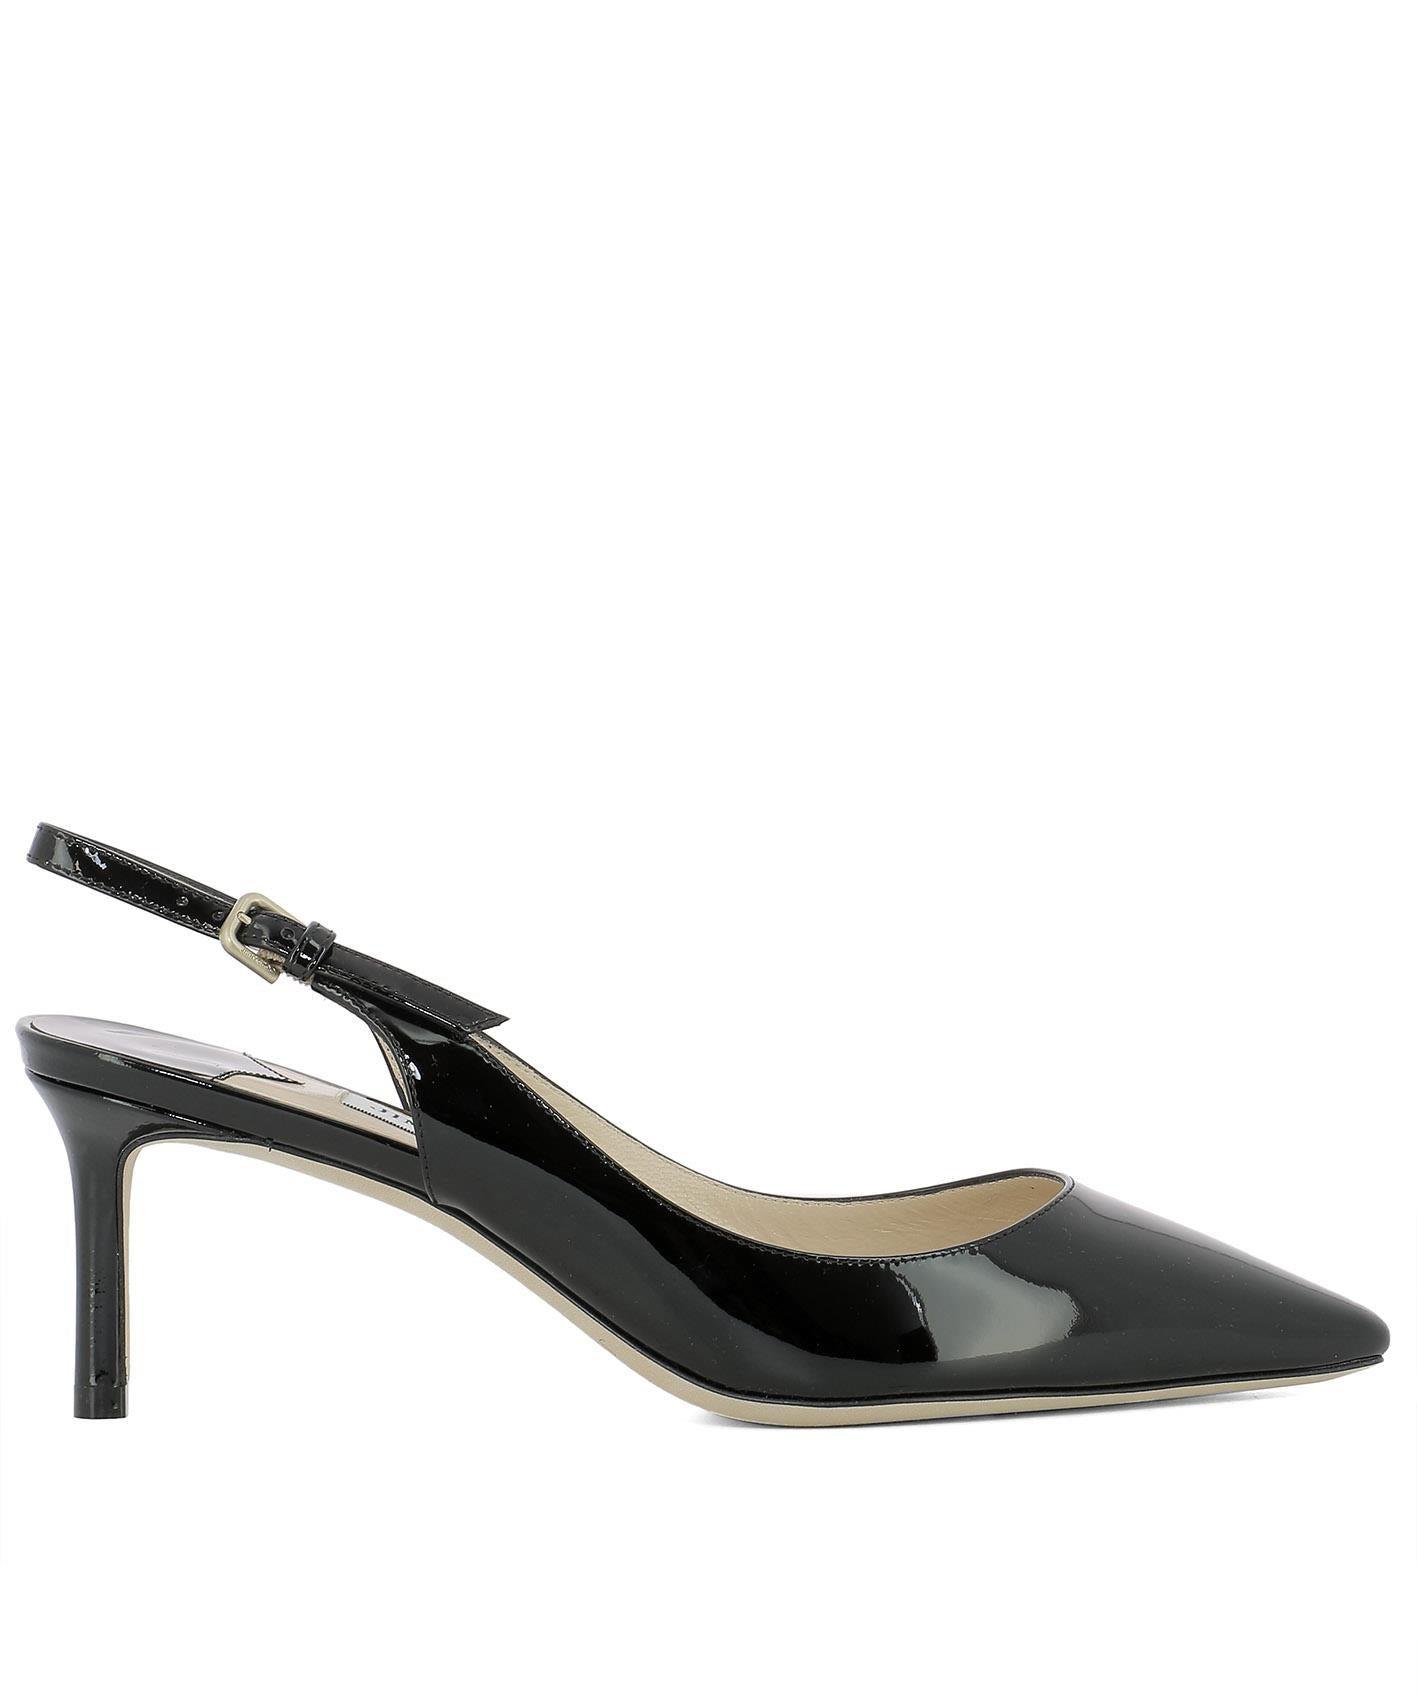 JIMMY CHOO ERIN 60 SLINGBACK PUMPS